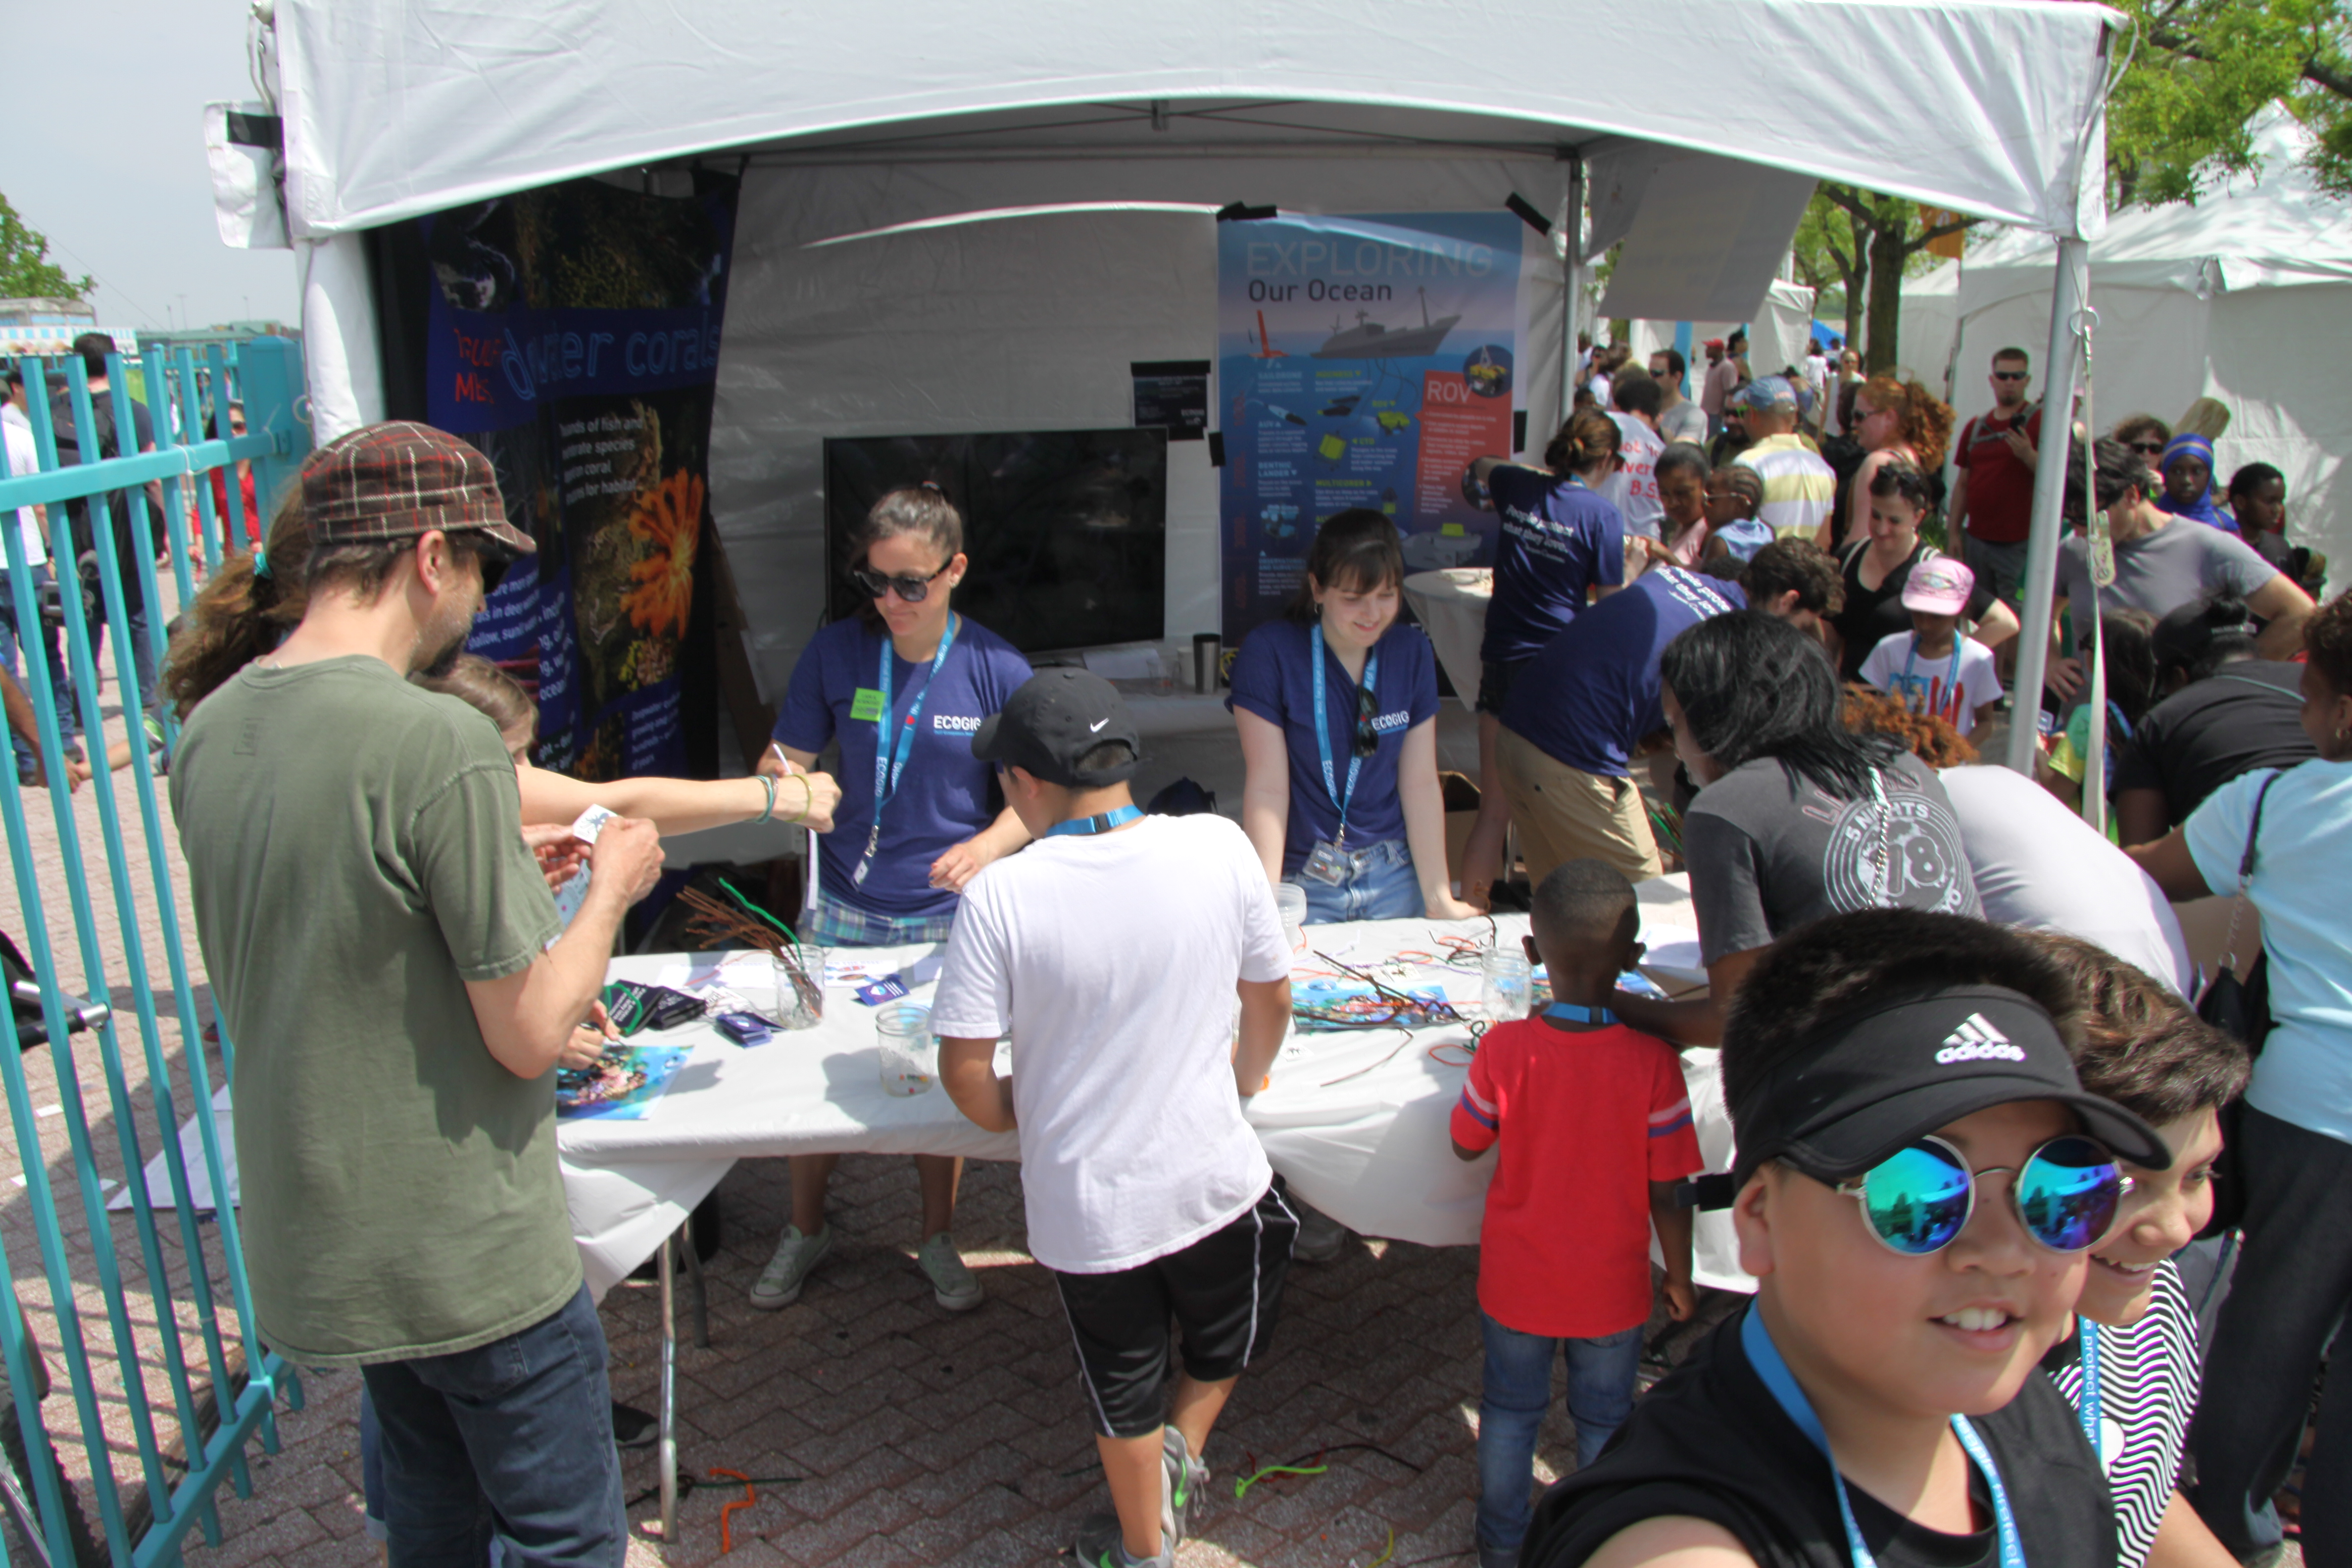 <div style='color:#000000;'><br /><br /><h2>2017 Philadelphia Science Carnival. ECOGIG researchers from Temple University took the Ocean Discovery Zone to the Philadelphia Science Carnival to share the wonders of the ocean and their research on deep sea corals with science interested visitors!</h2>Photos courtesy of Alexis Weinnig.</div>